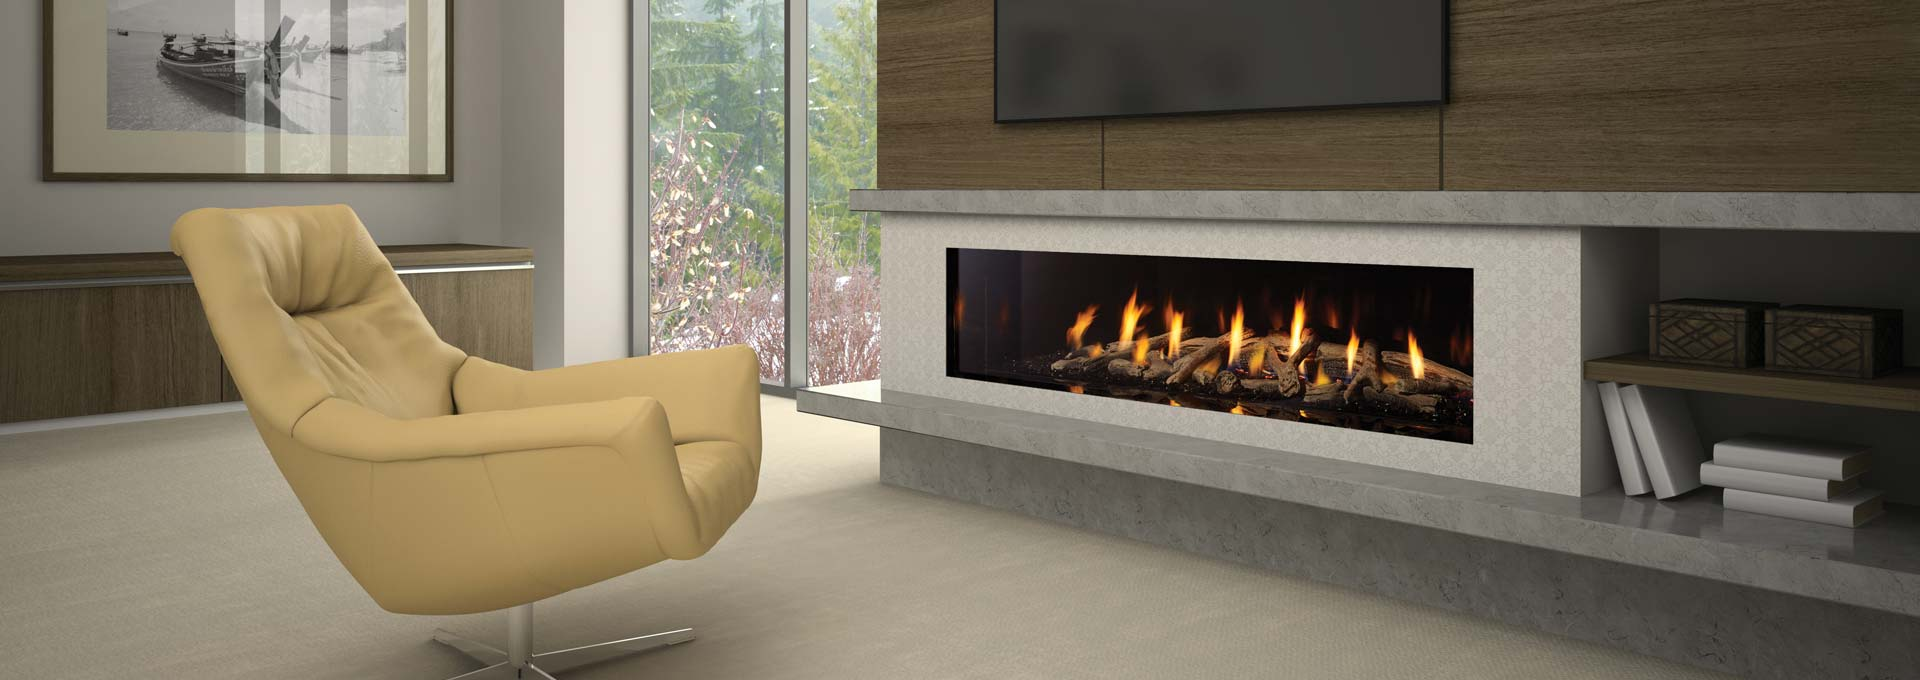 Regency city series new york view 72 modern gas fireplace for Modern gas fireplace price